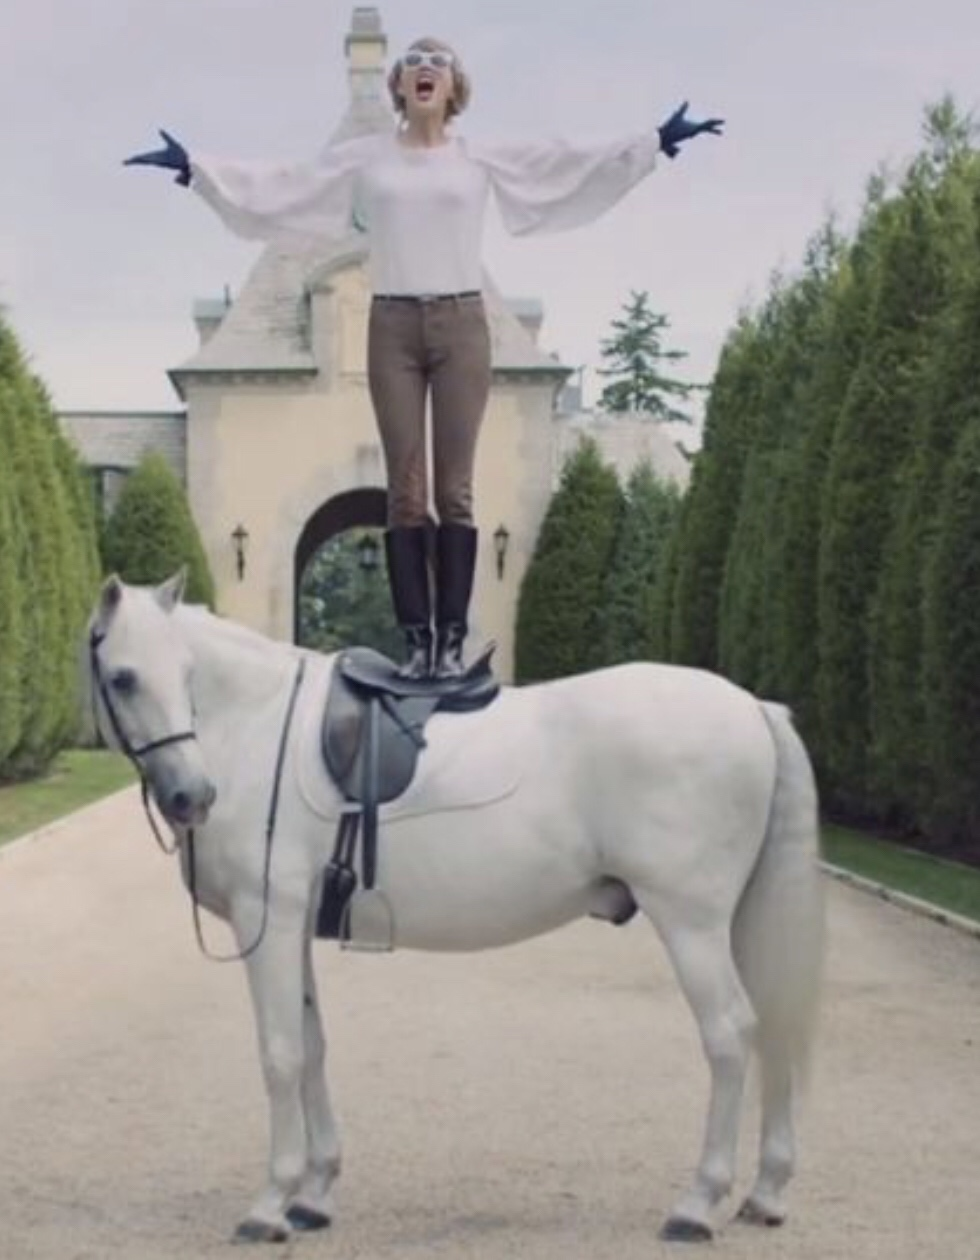 Taylor Swift on a horse